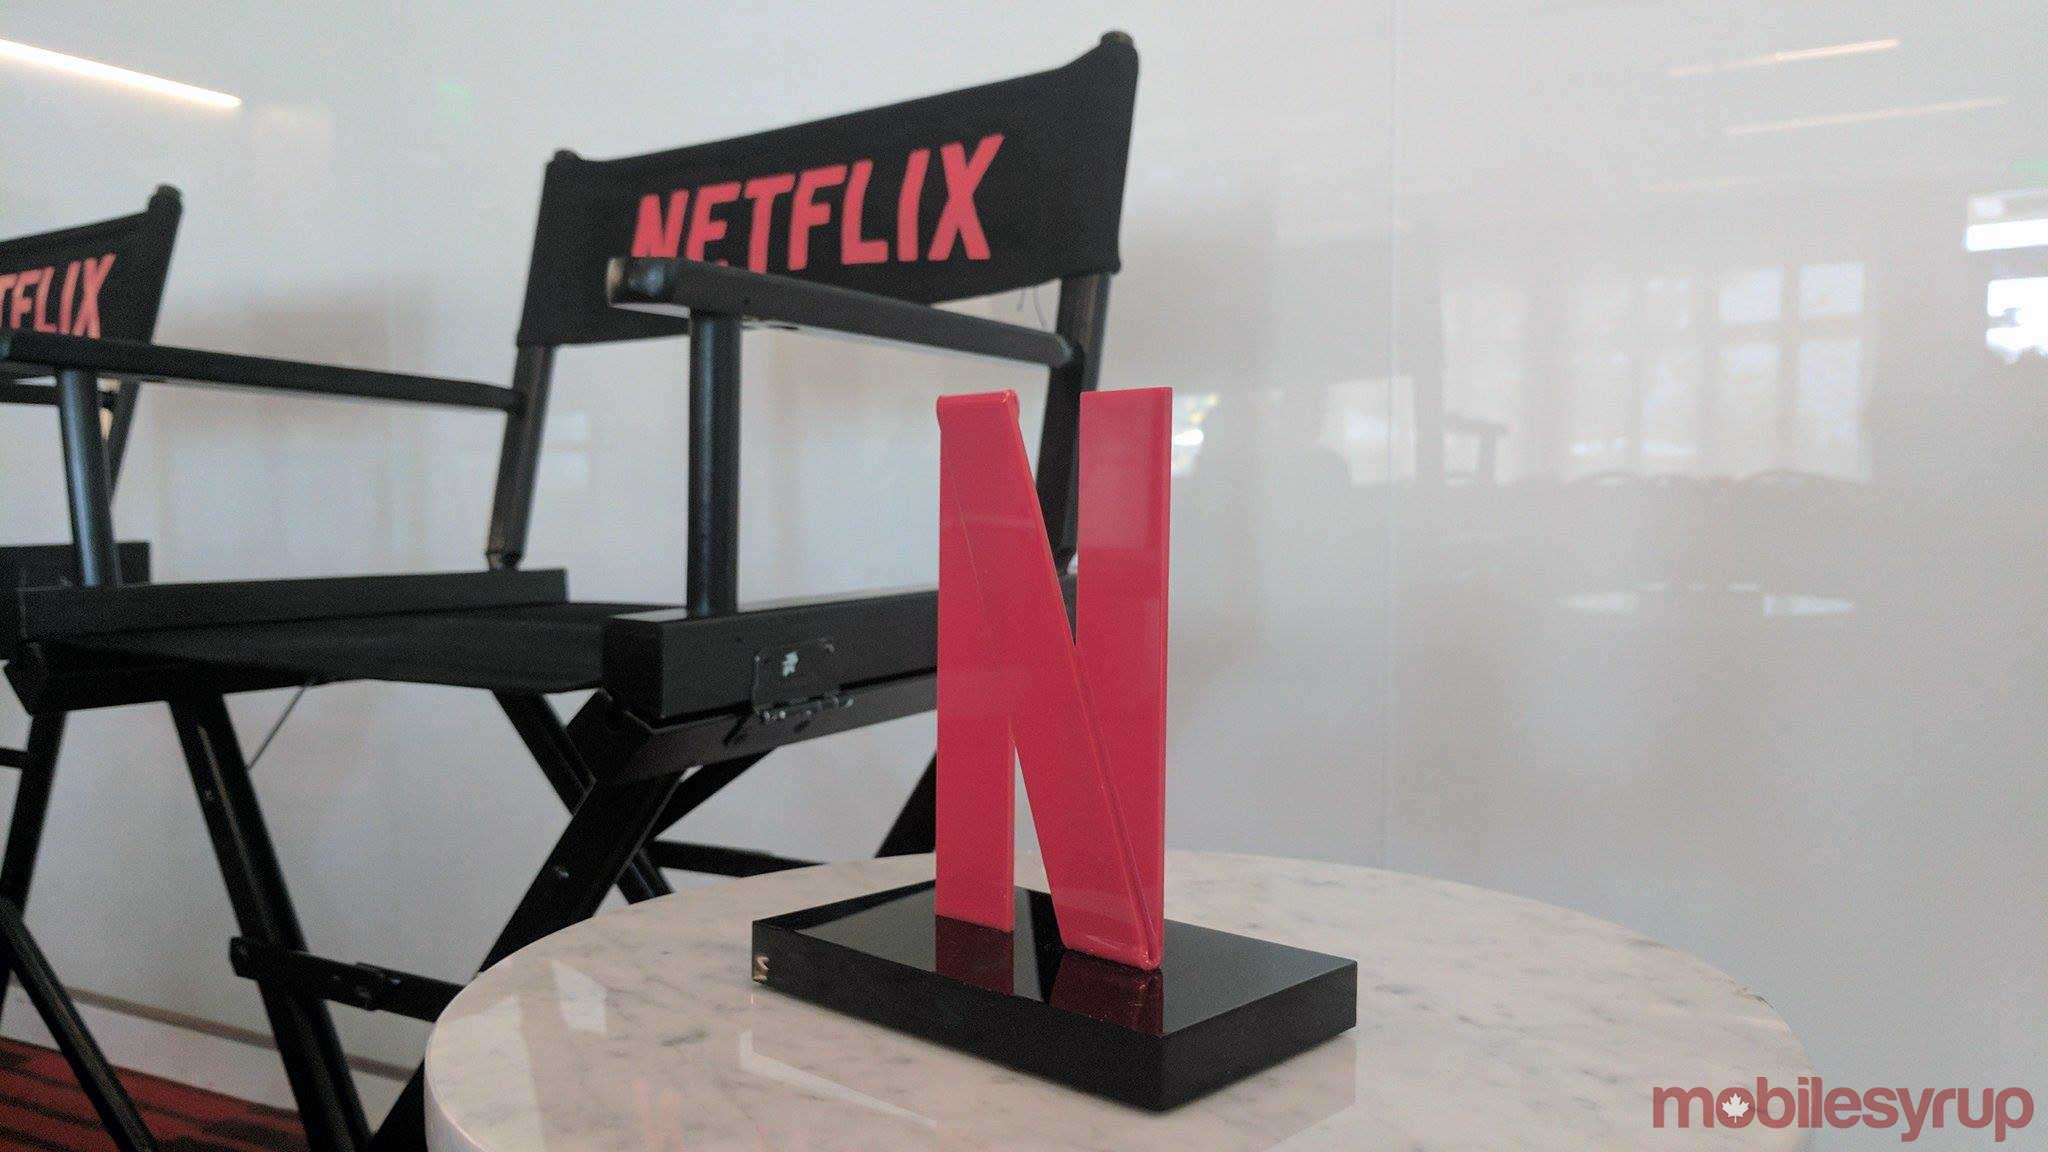 netflix n and directors chair - netflix peak streaming day